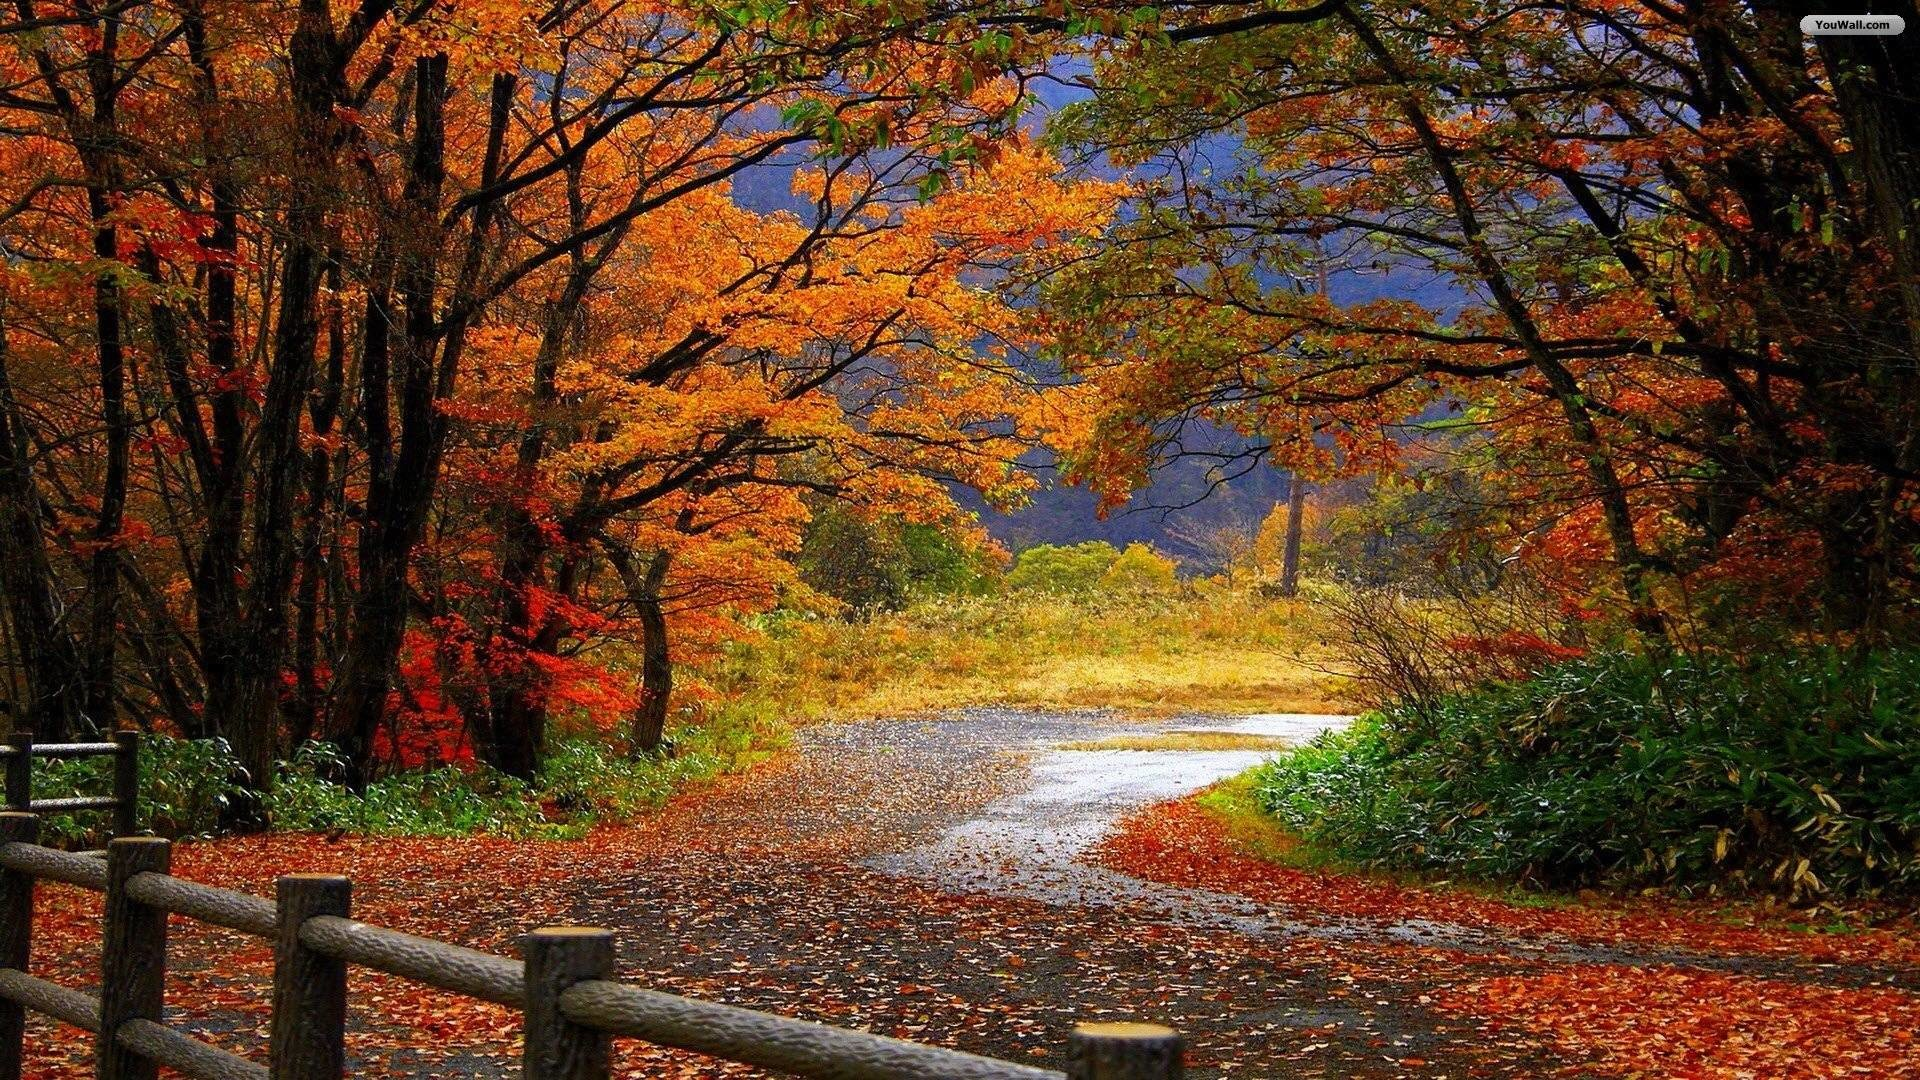 Res: 1920x1080, autumn-scenery-wallpaper scenery wallpaper HD free wallpapers .